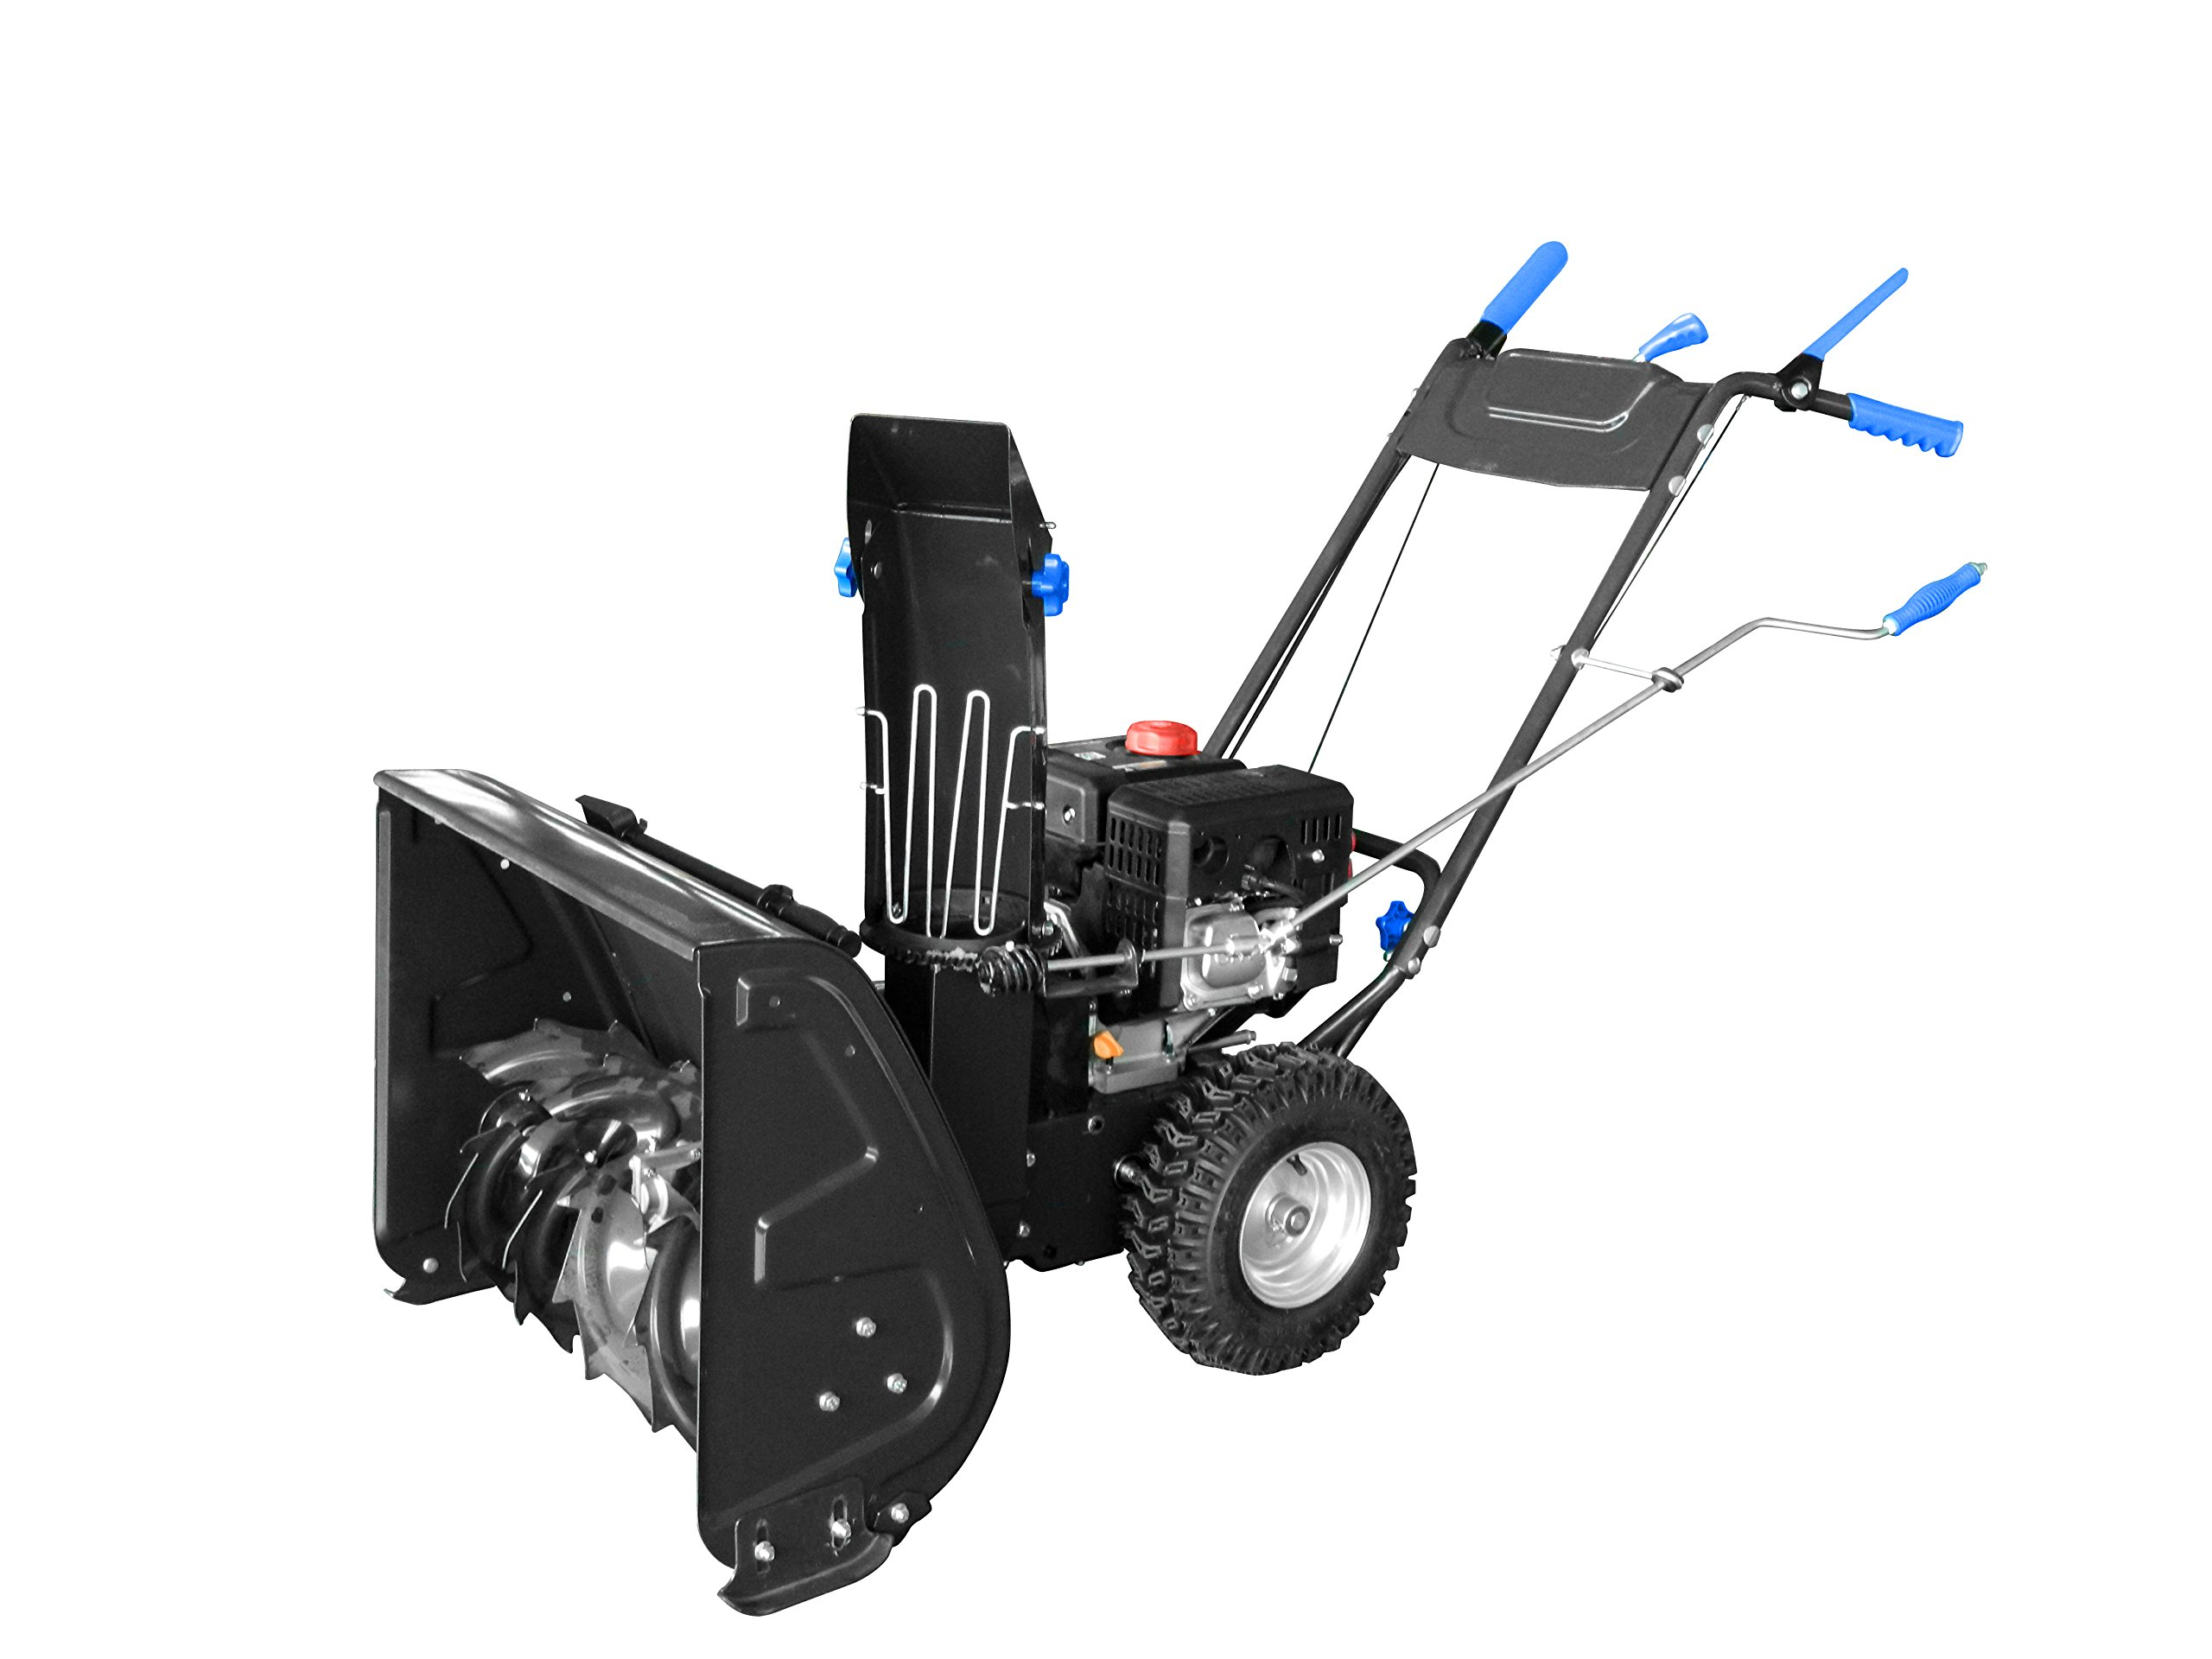 AAVIX AGT1426 208cc 2-Stage Electric Start Self-Propelled Snow Blower, 26'', Black